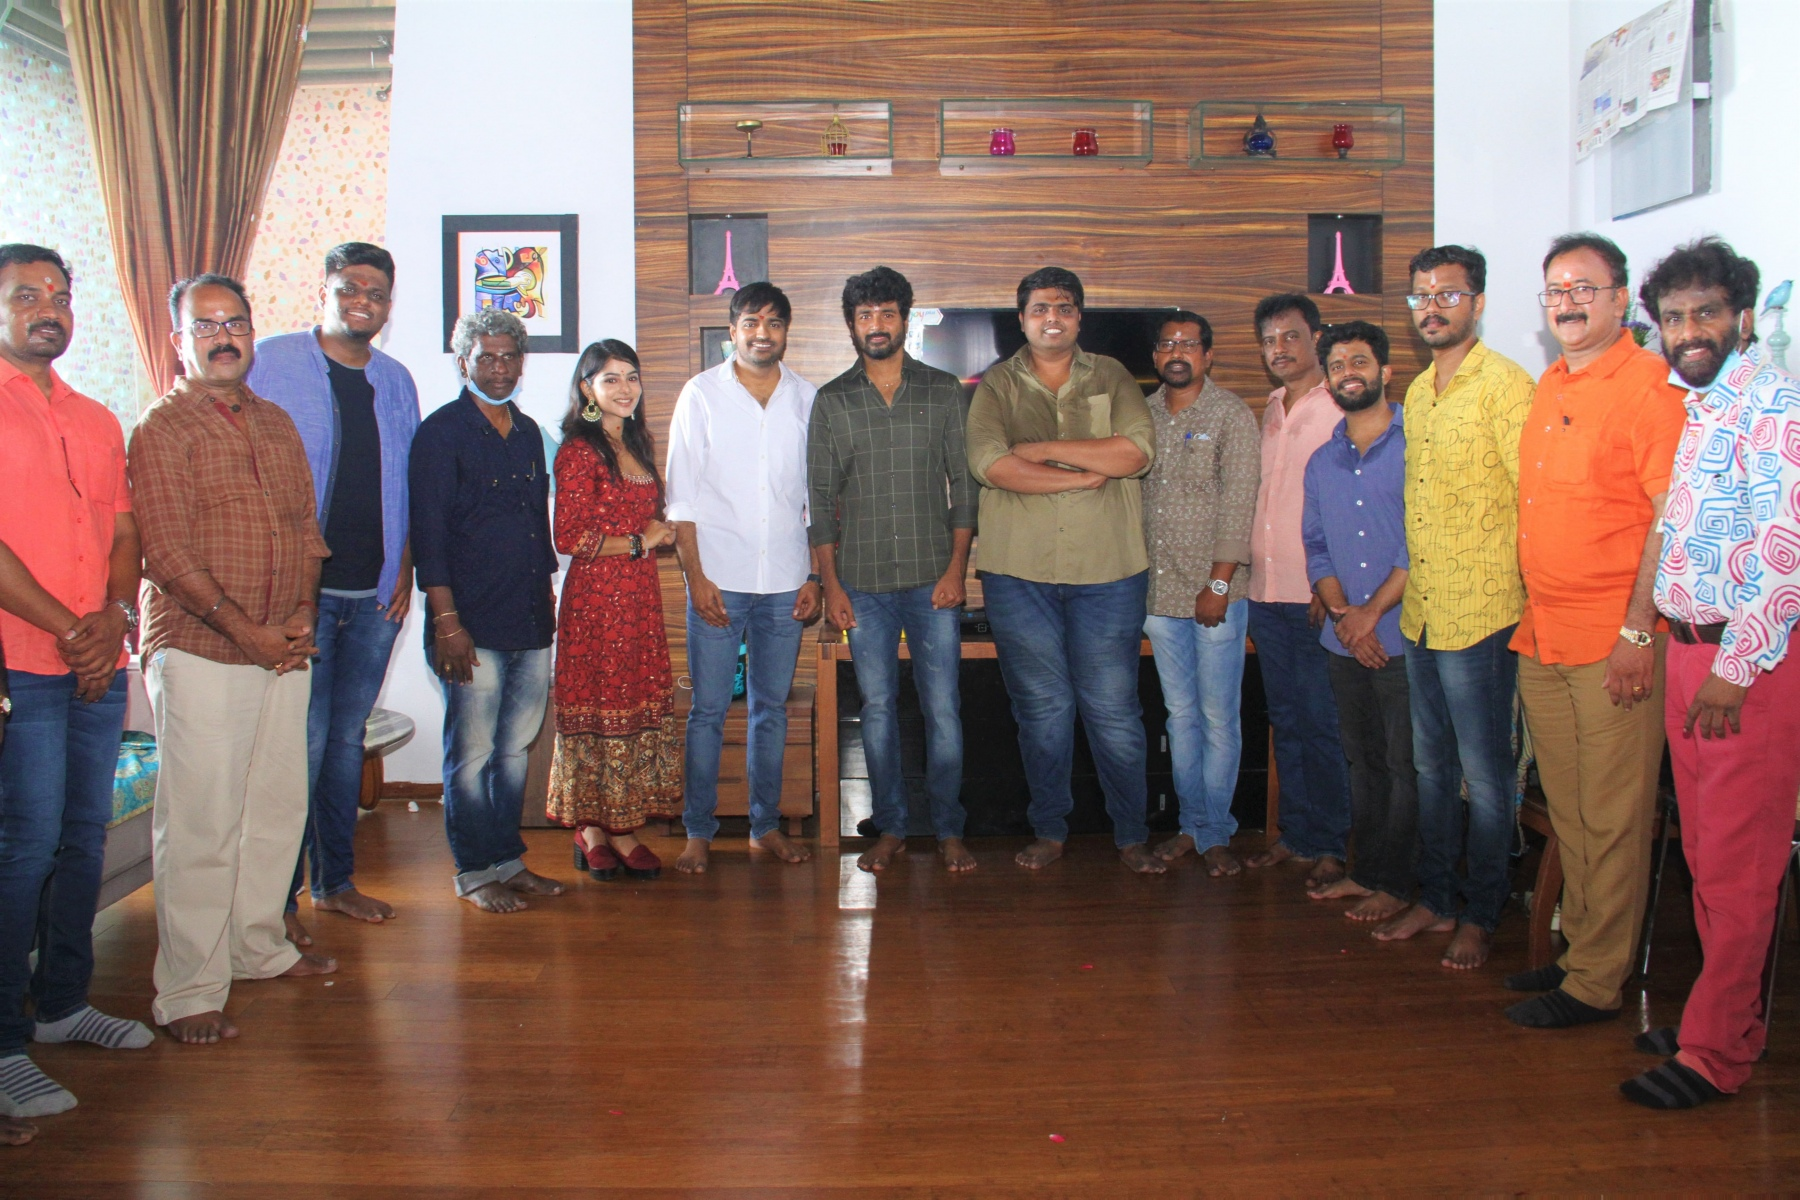 ags-new-film-launch-4